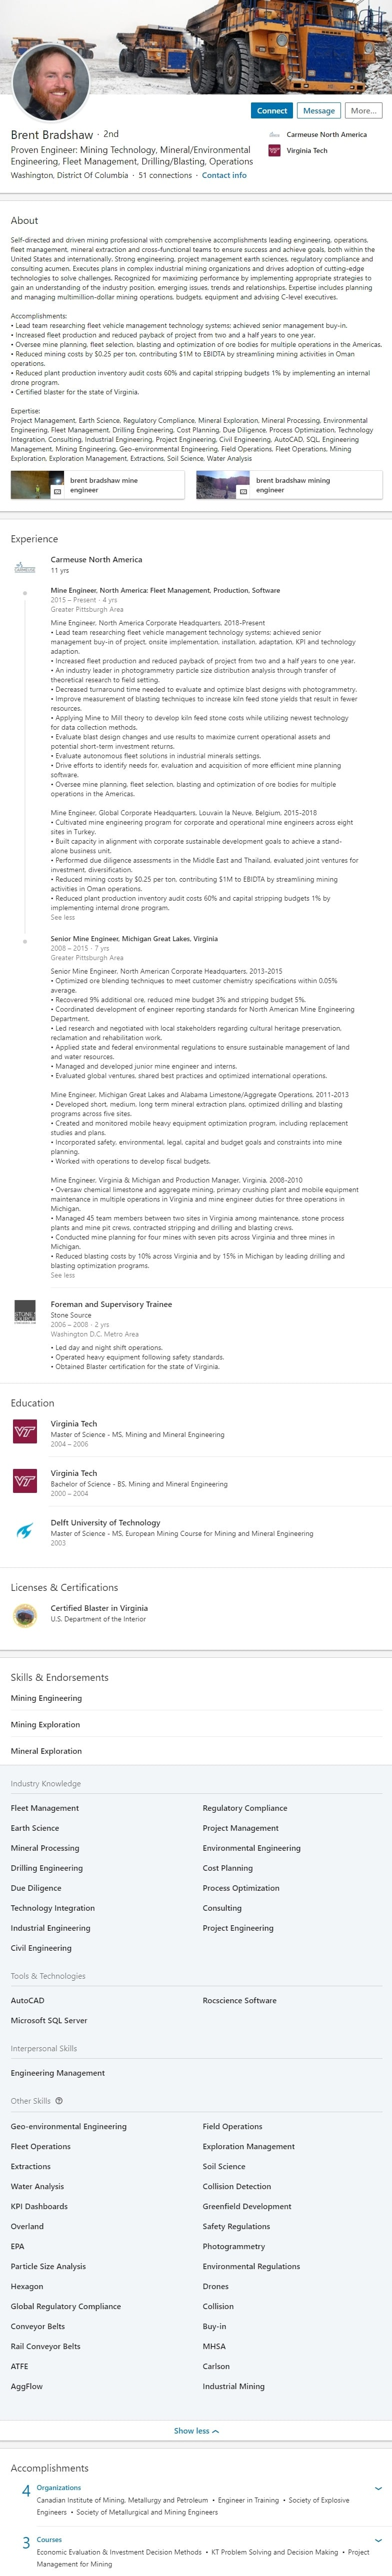 Sample LinkedIn Profile Example mining mineral engineering 2461